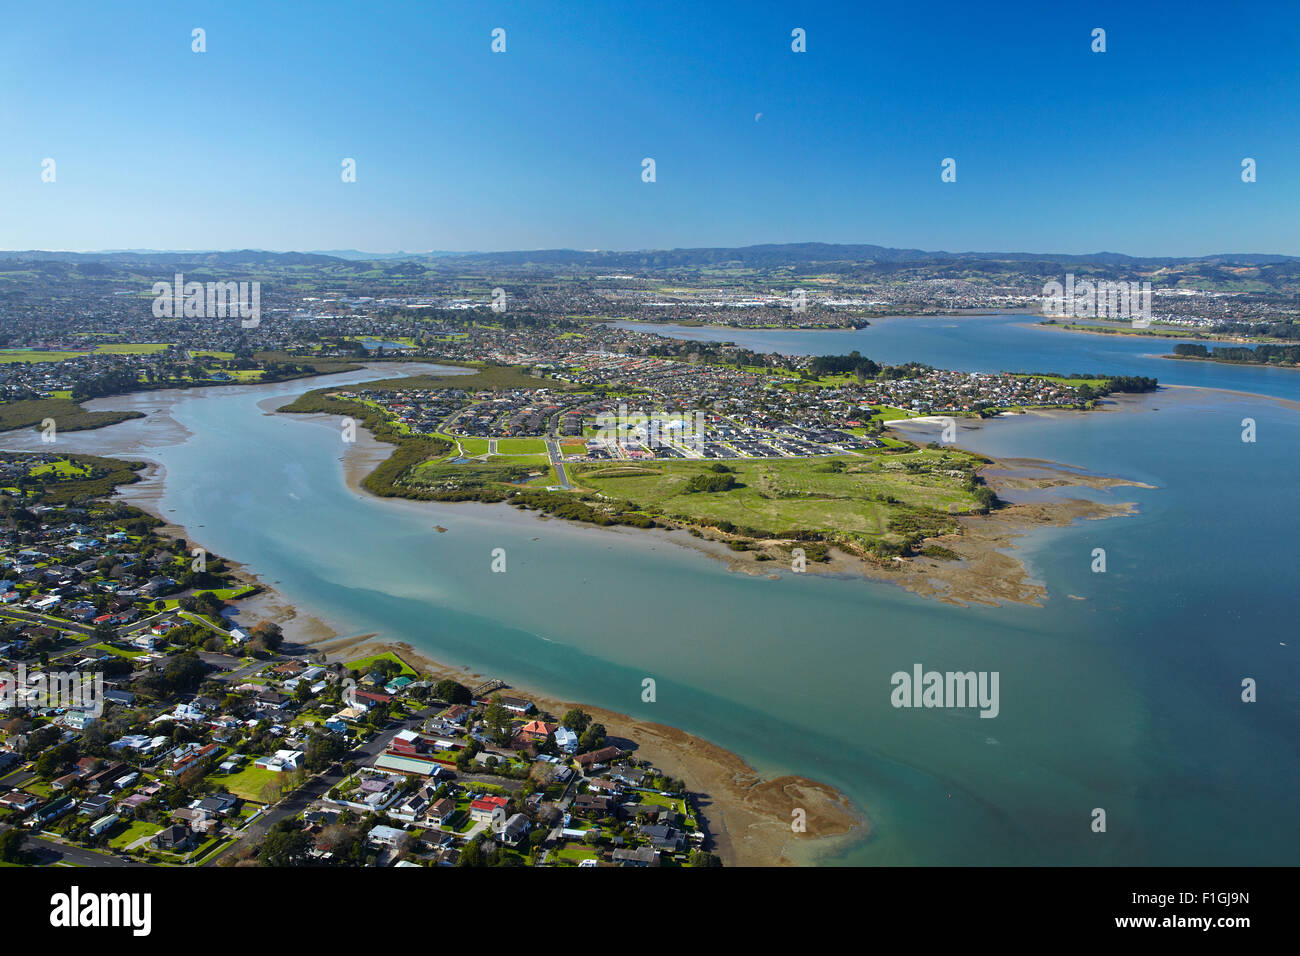 Weymouth, Wattle Downs and Manukau Harbour, Auckland, North Island, New Zealand - aerial - Stock Image